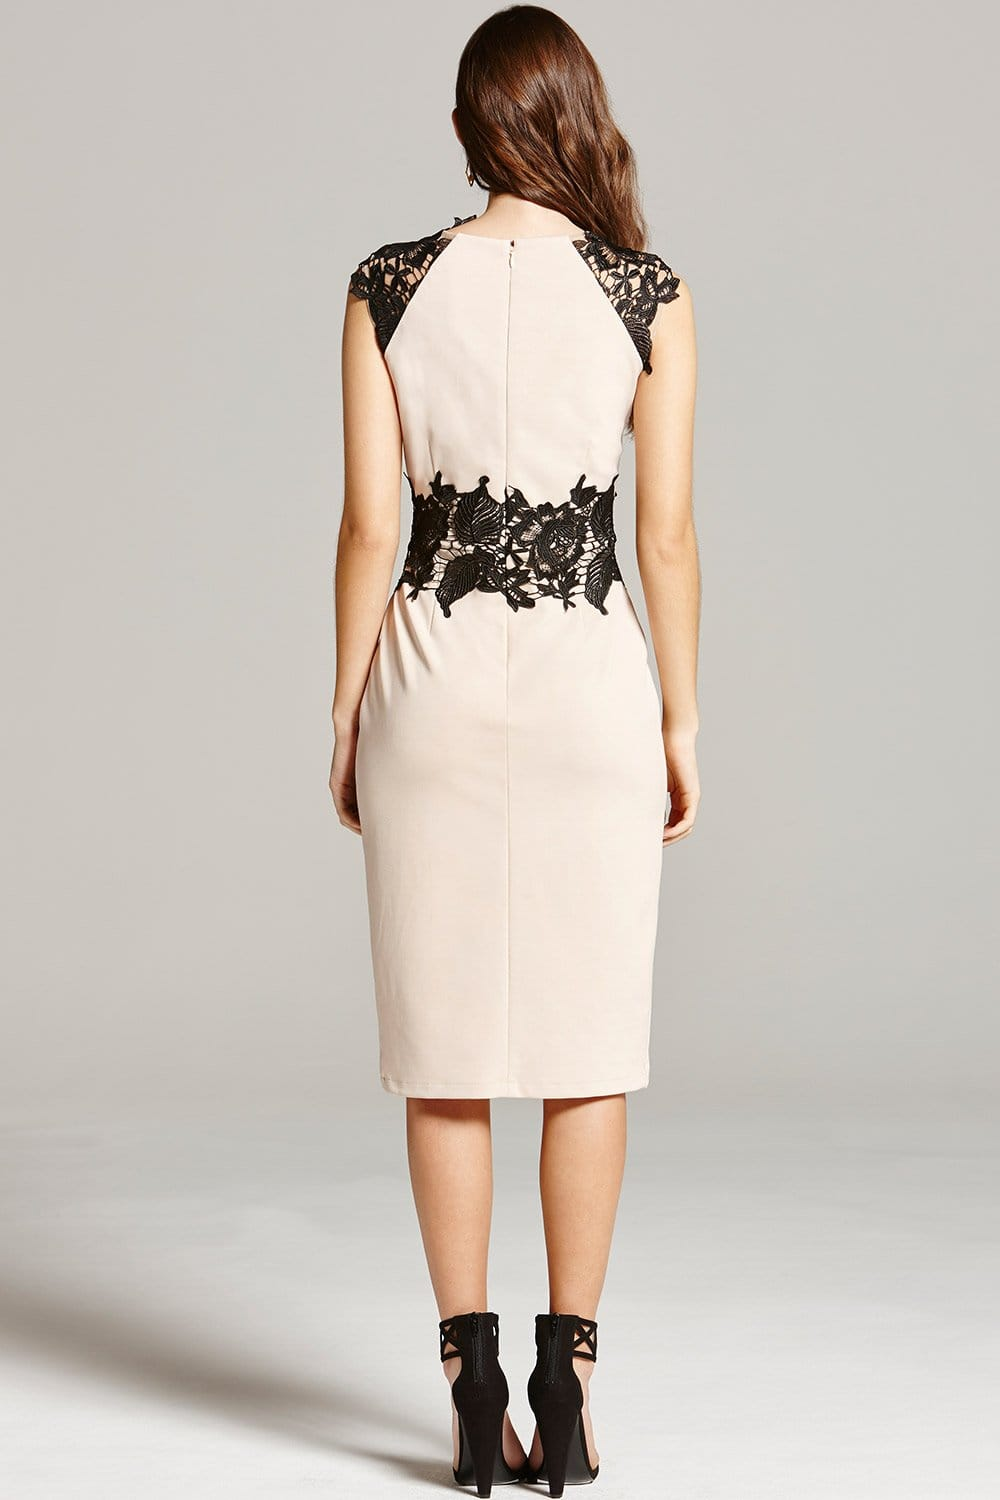 Nude and Black Lace Midi Dress - from Little Mistress UK